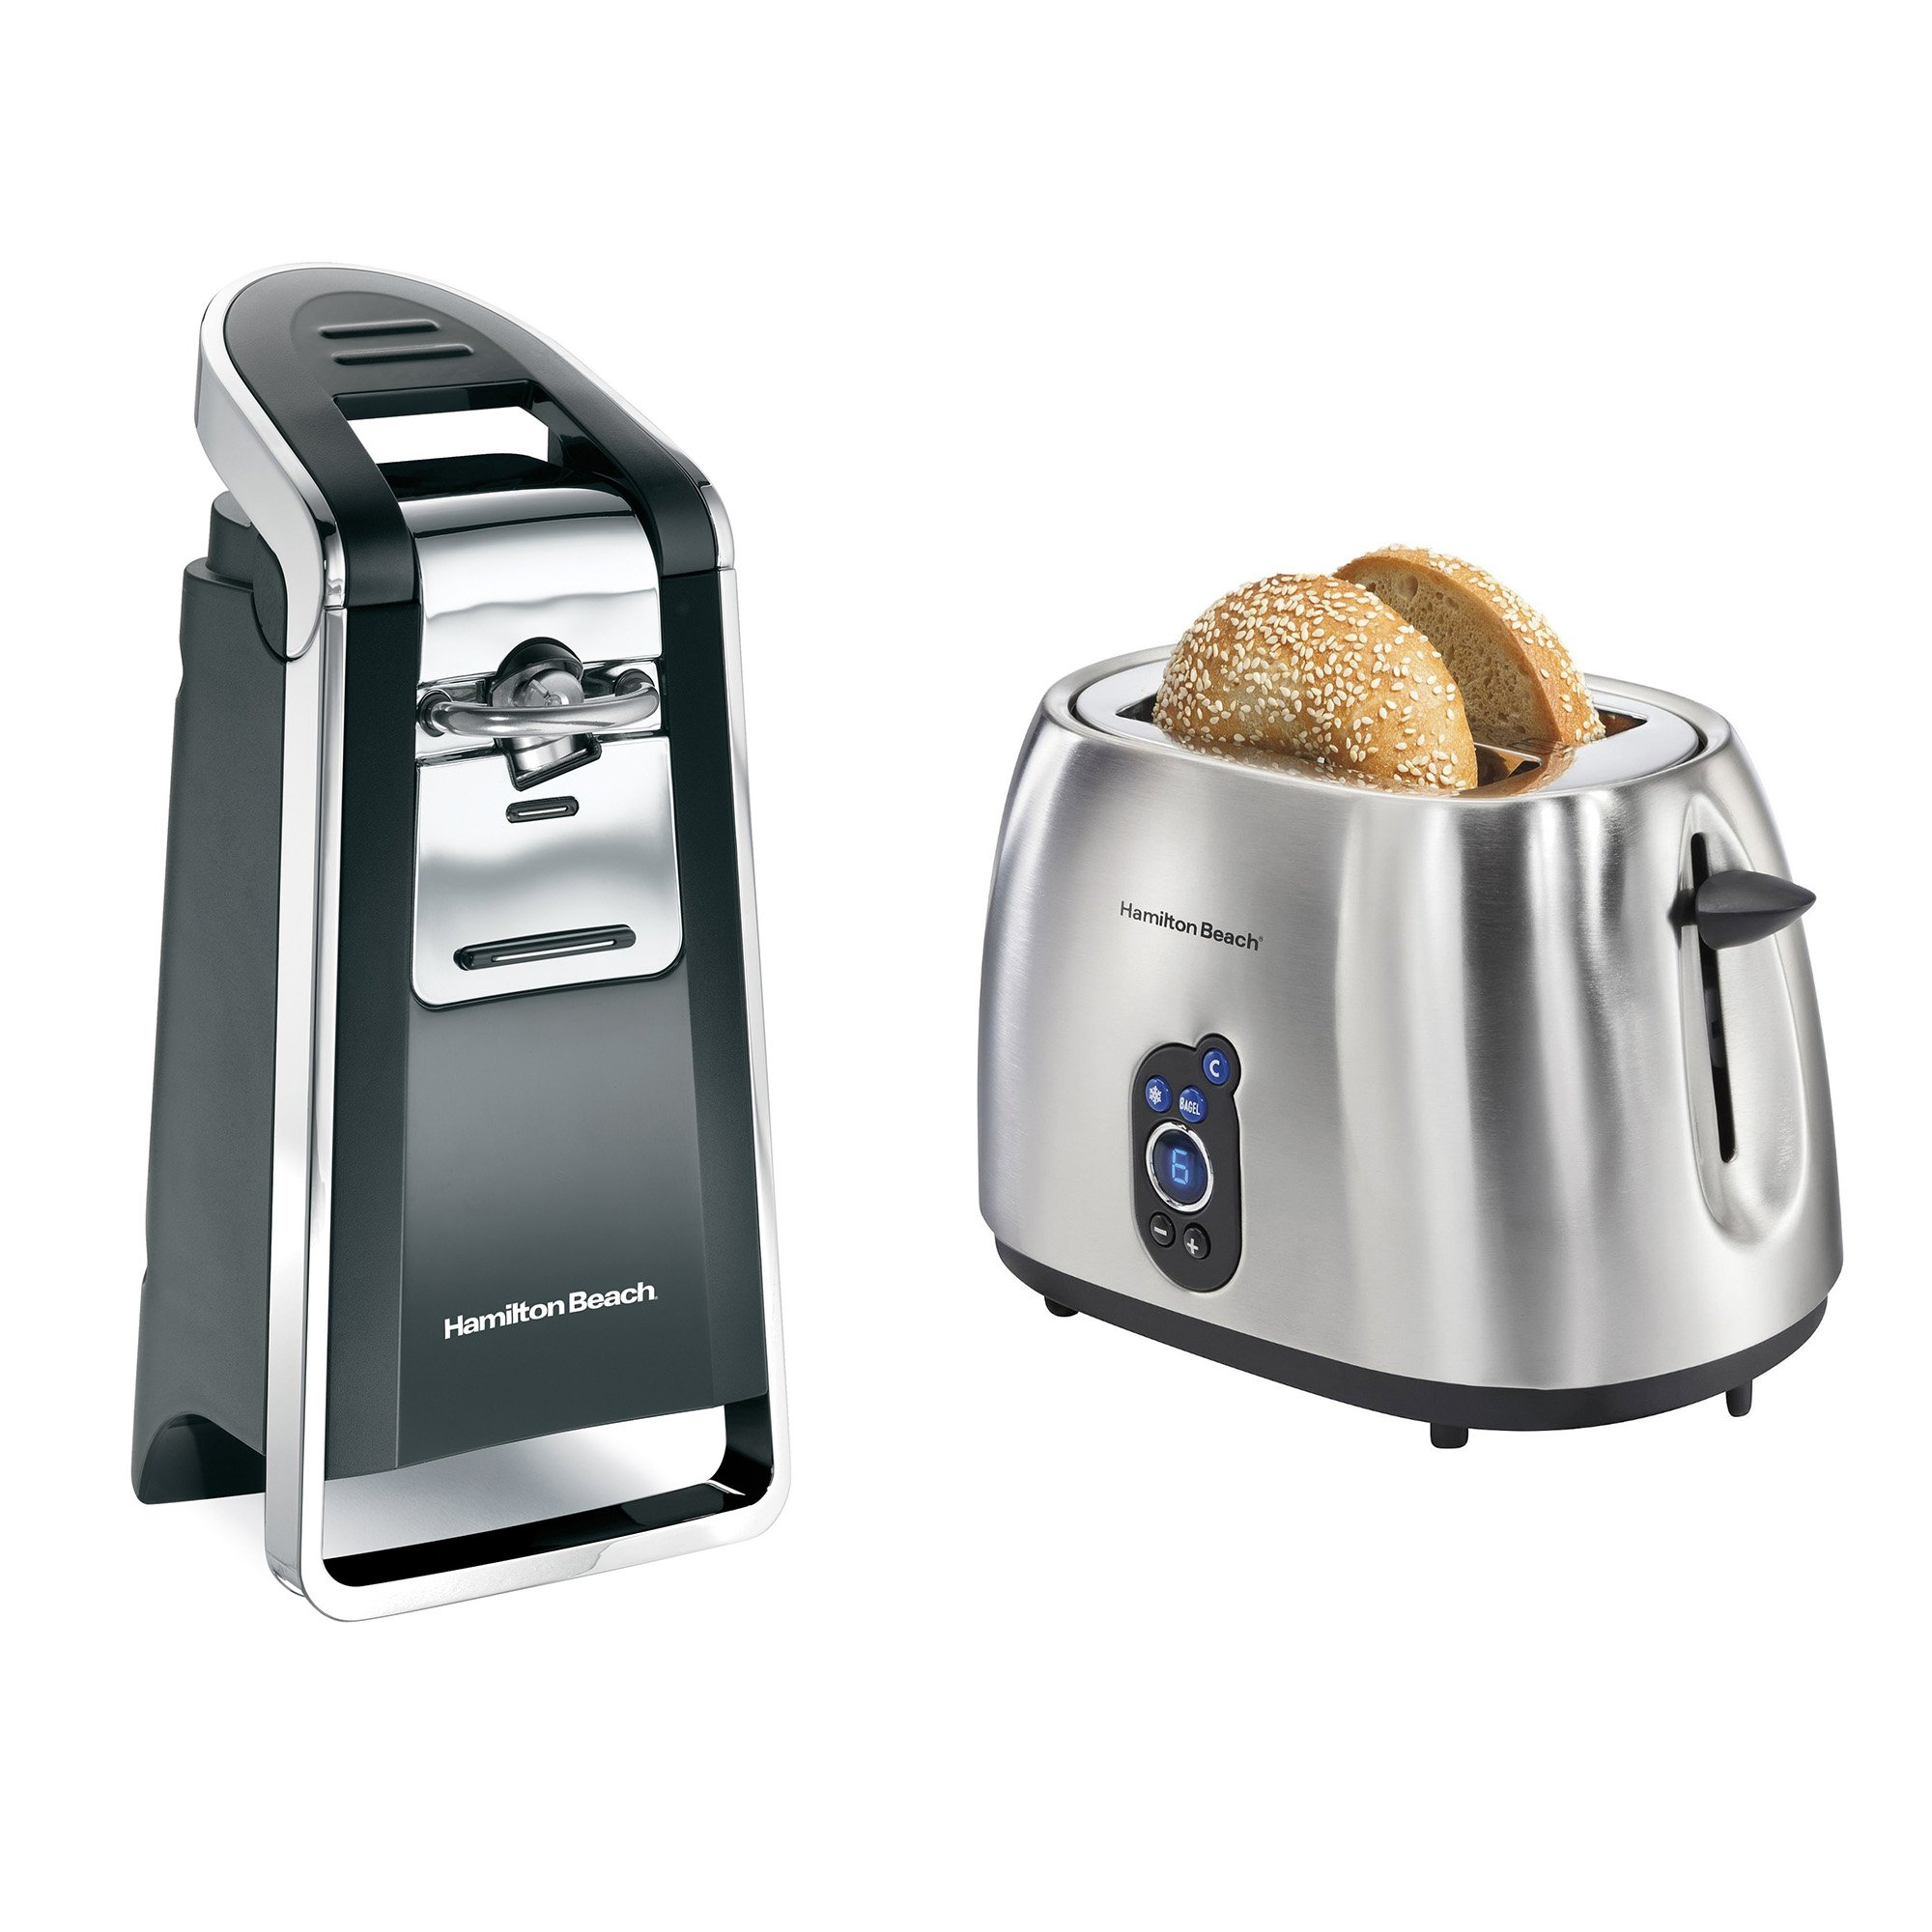 Hamilton Beach Easy Touch Electric Can Opener + 2-Slice Stainless Steel Toaster